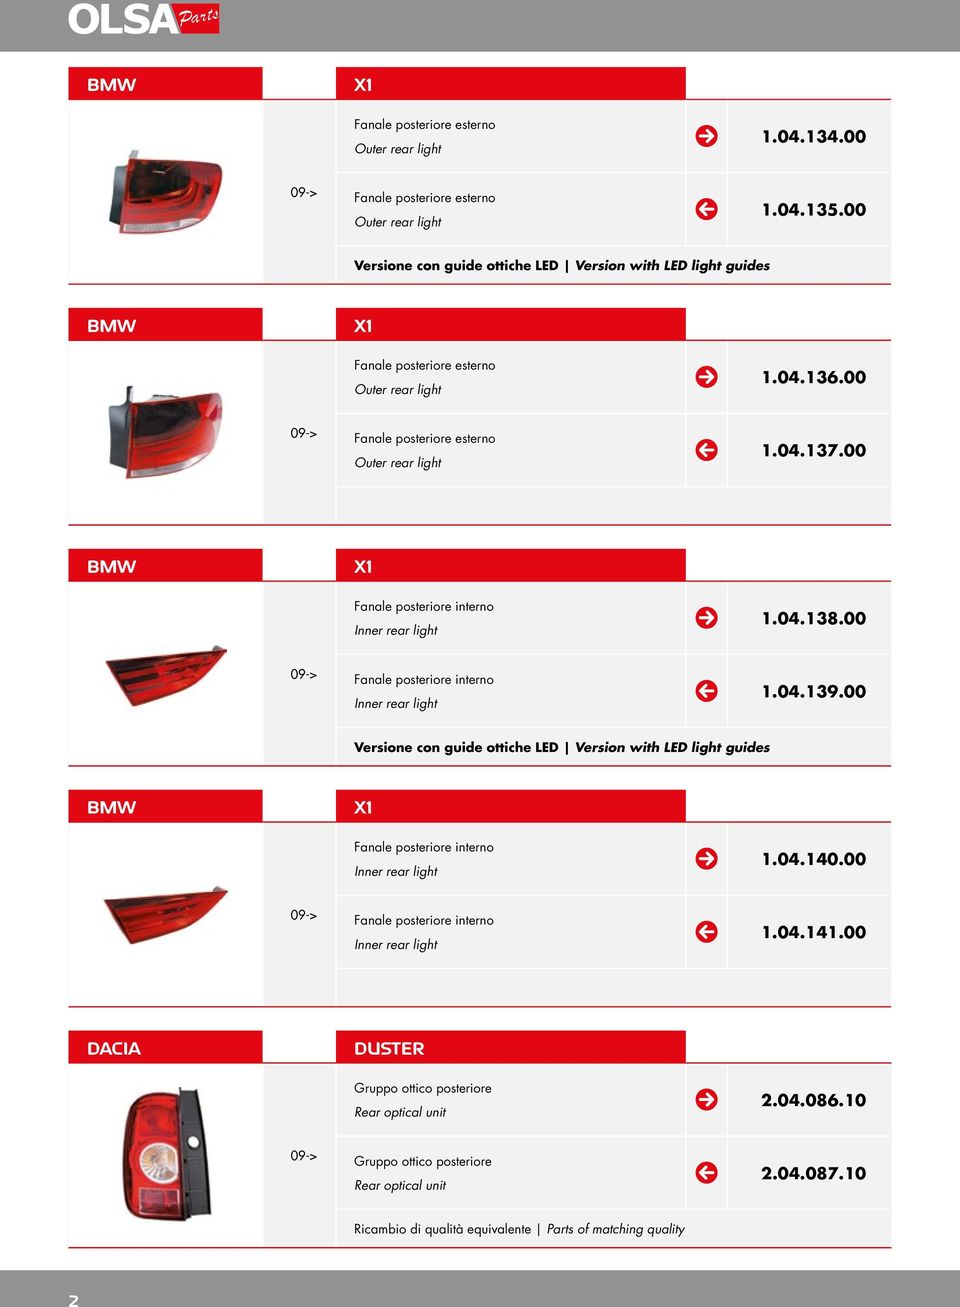 00 BMW X1 Fanale posteriore interno Inner rear light 1.04.138.00 09-> Fanale posteriore interno Inner rear light 1.04.139.